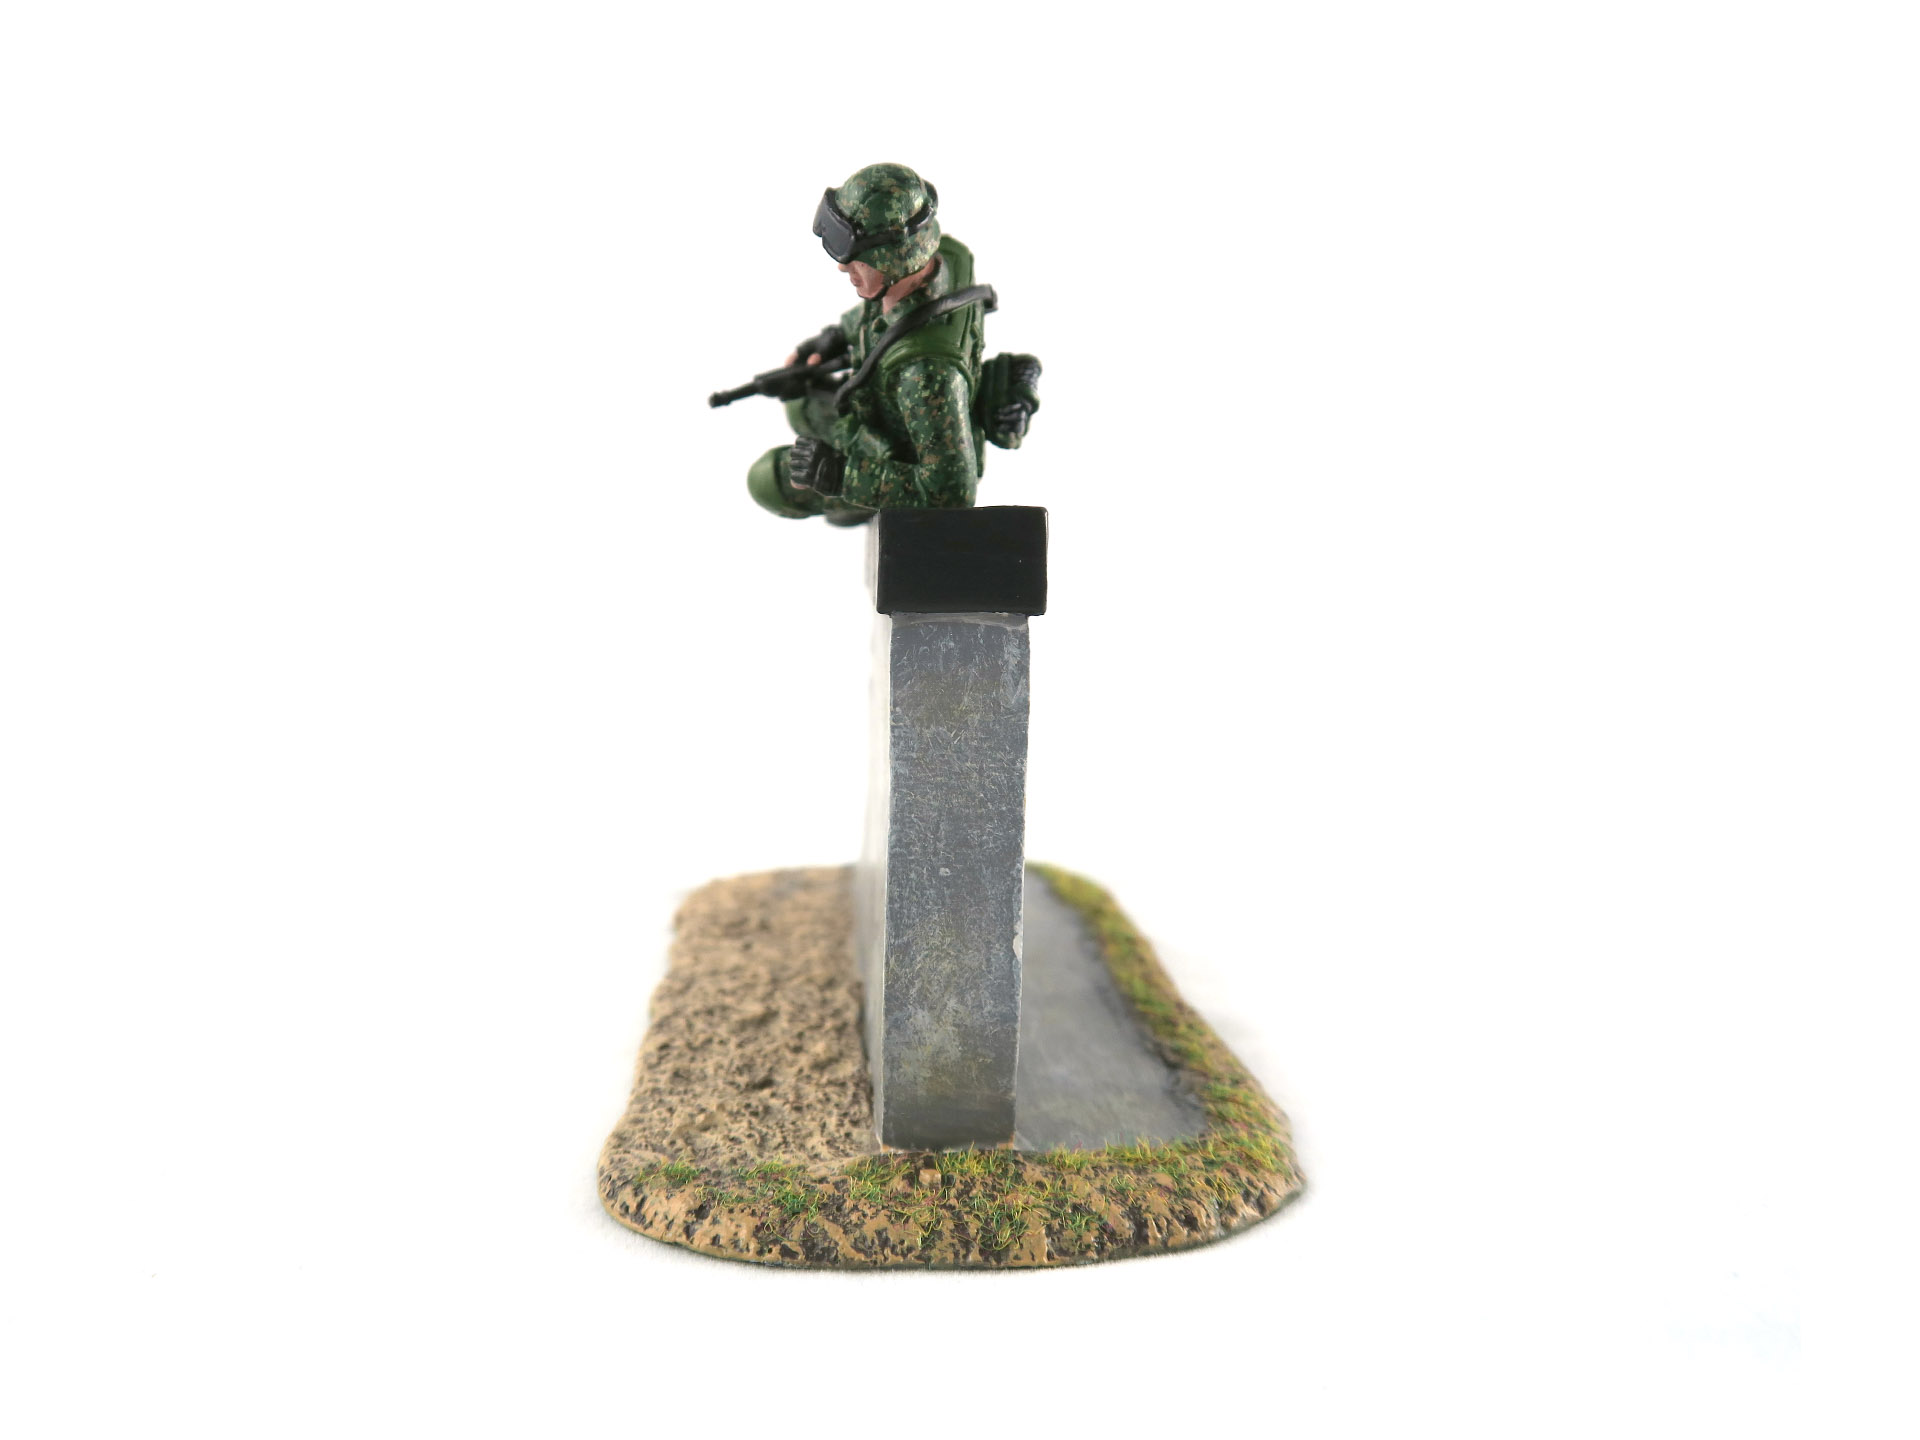 SAF Standard Obstacle Course SOC Low Wall Obstacle Toy Soldier Collectible Figurine (Side 2)